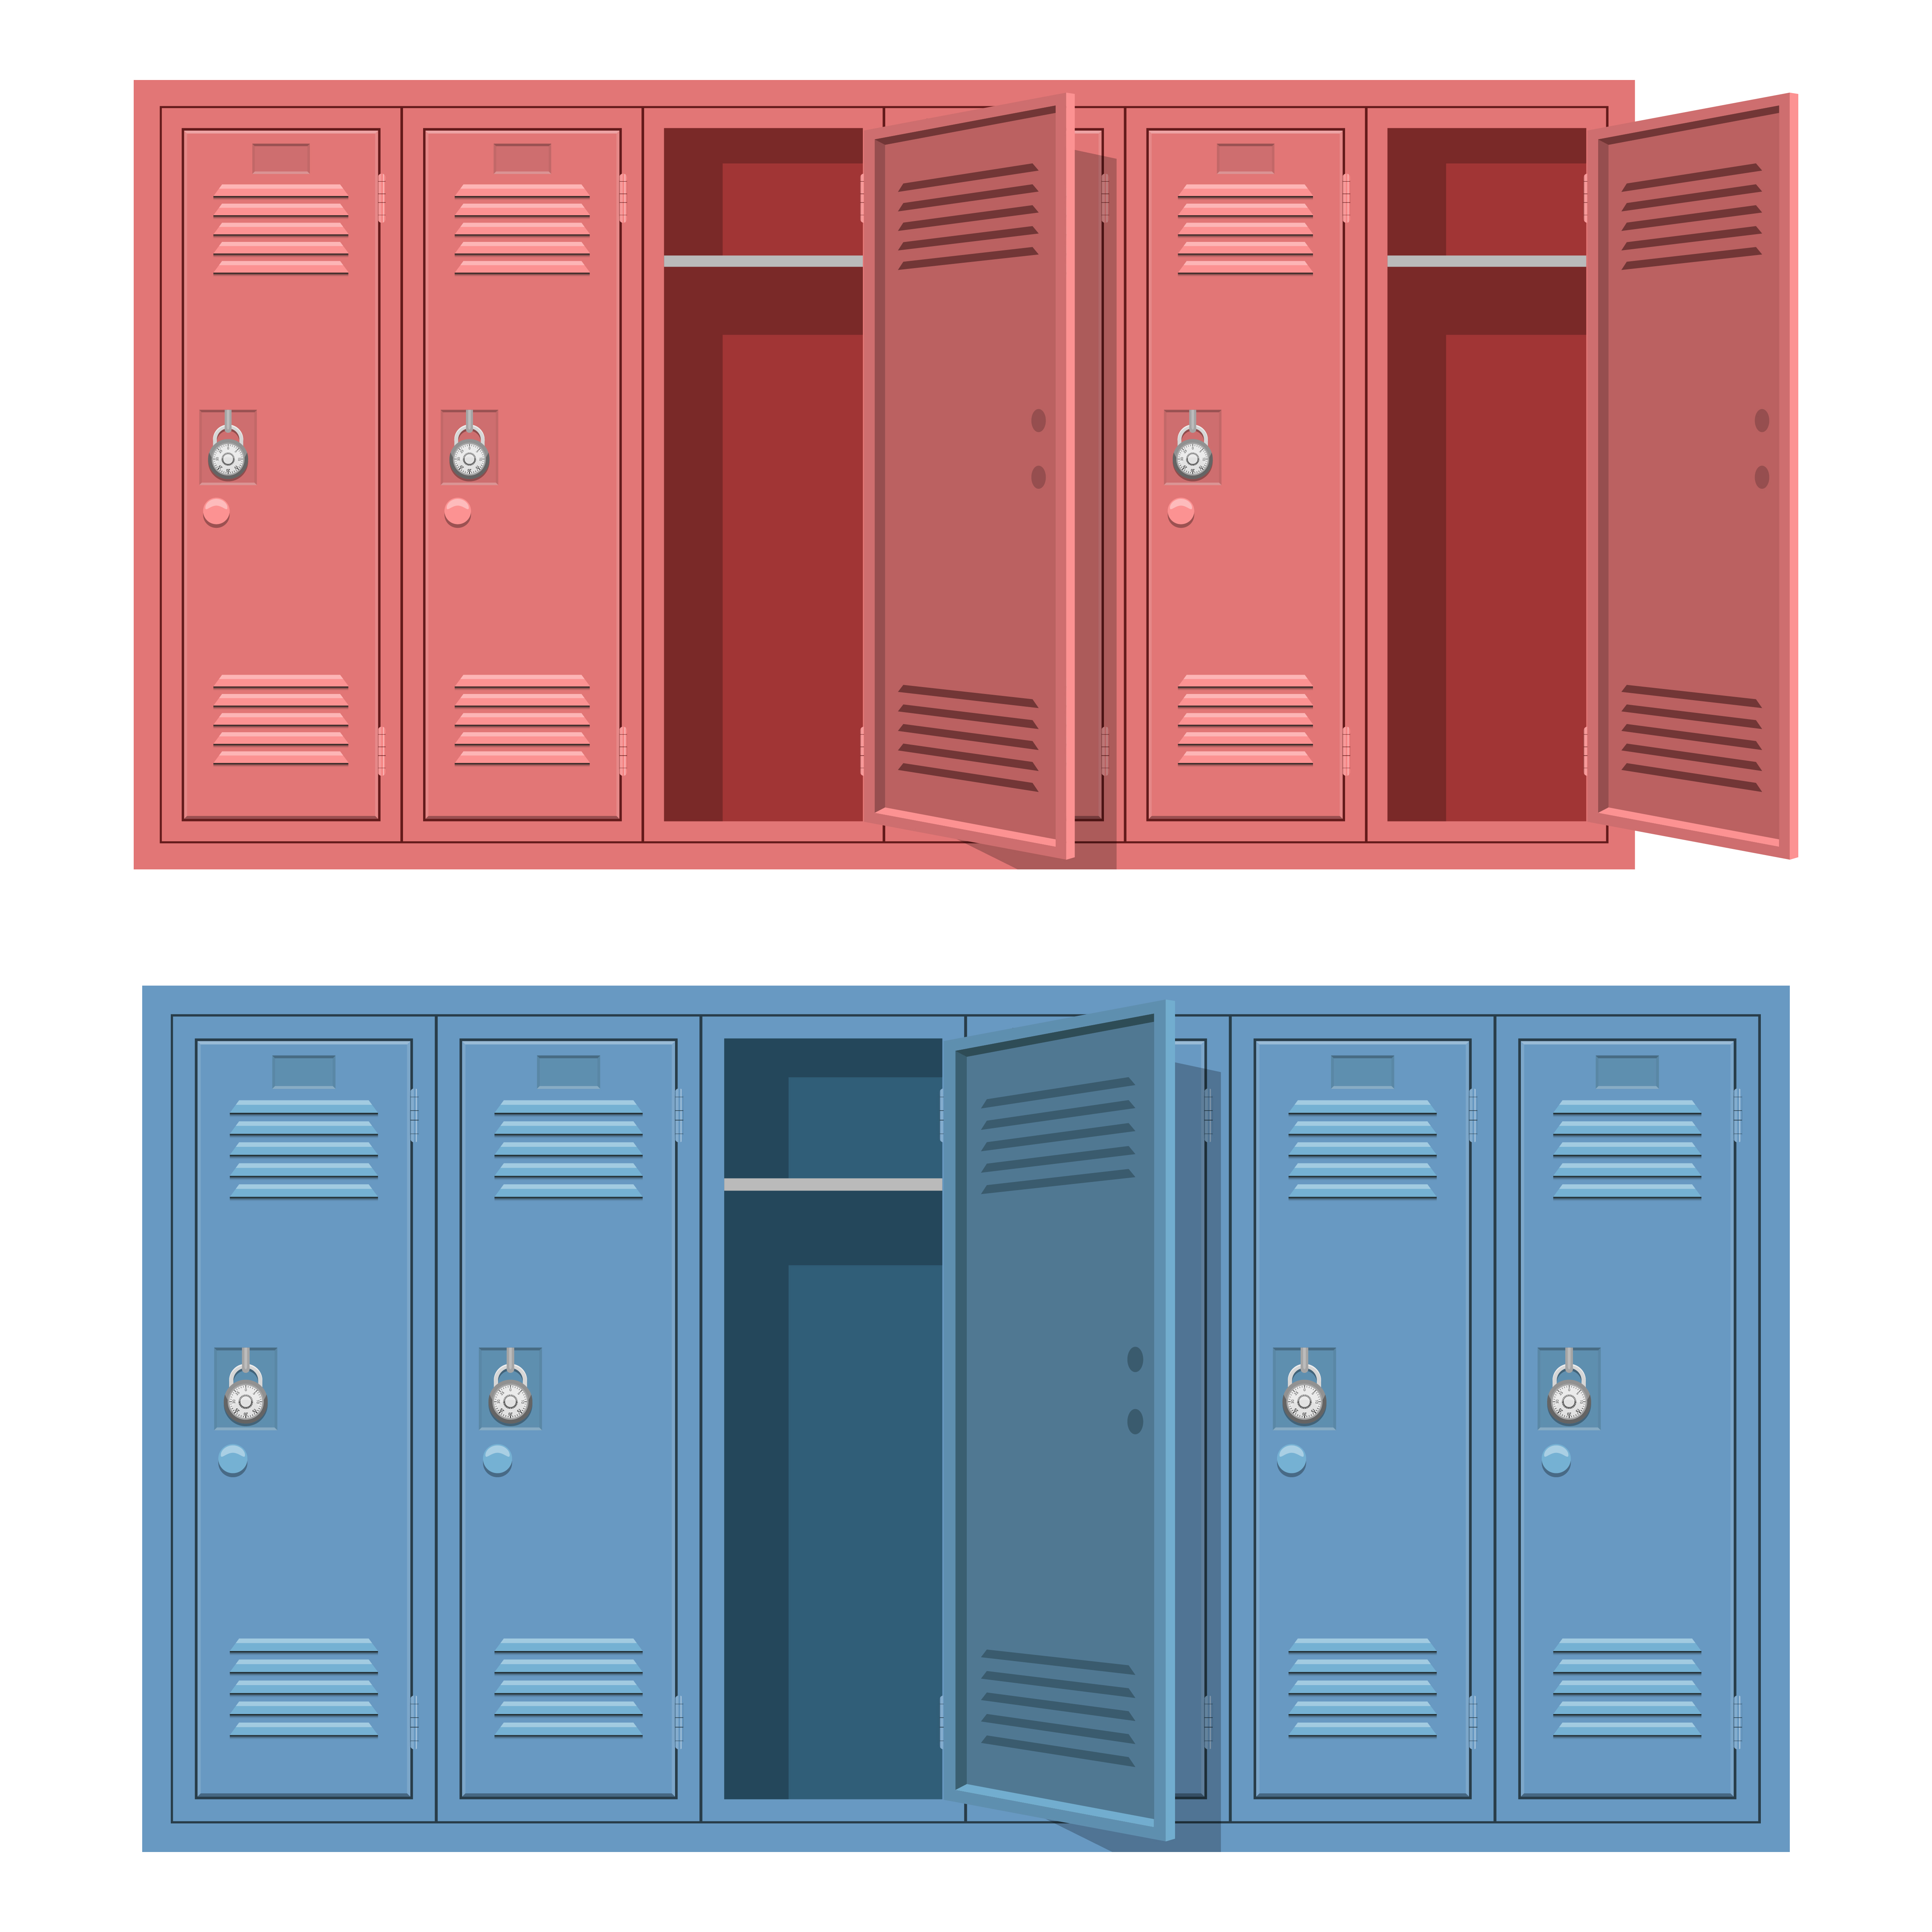 School Locker Isolated On White Background Download Free Vectors Clipart Graphics Vector Art